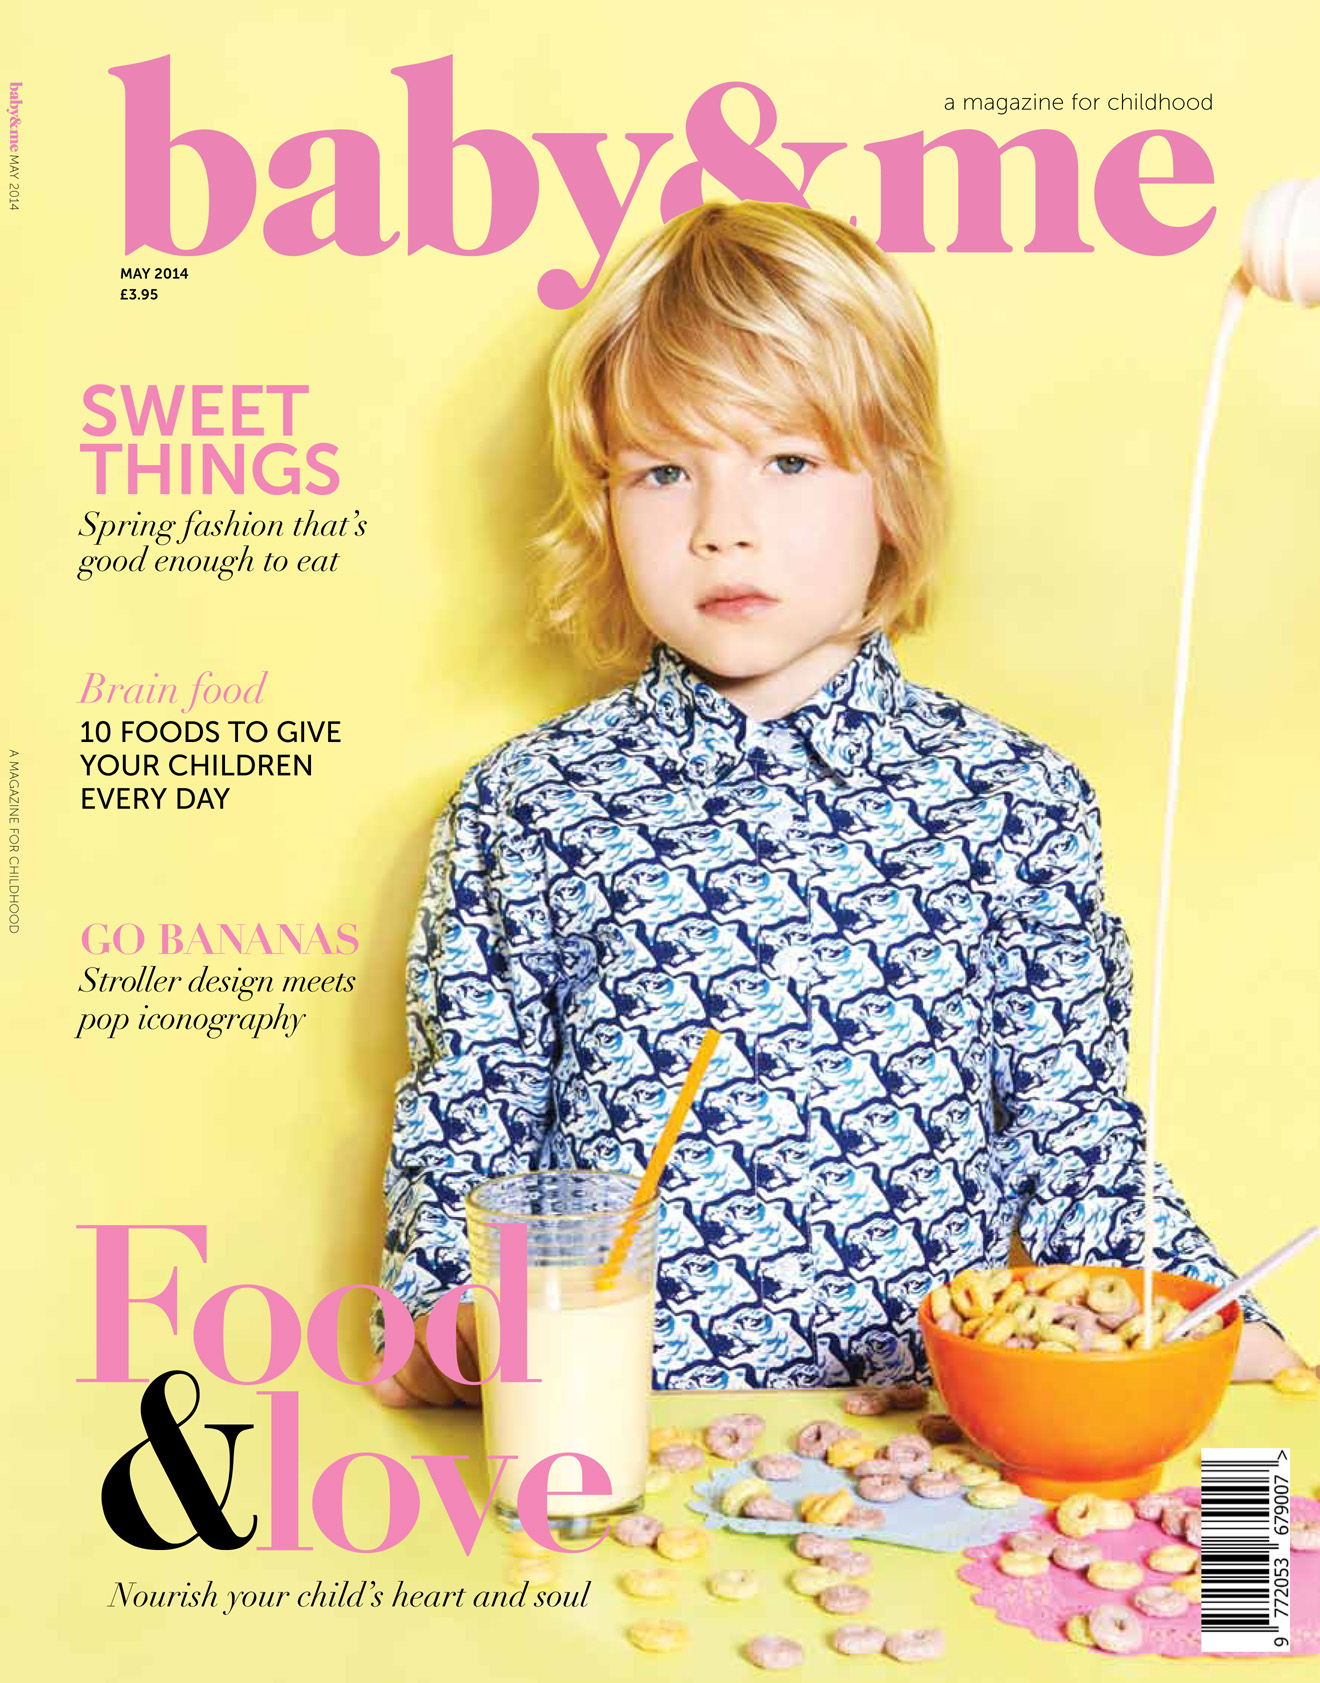 baby&me_MAy_Cover_F.jpg